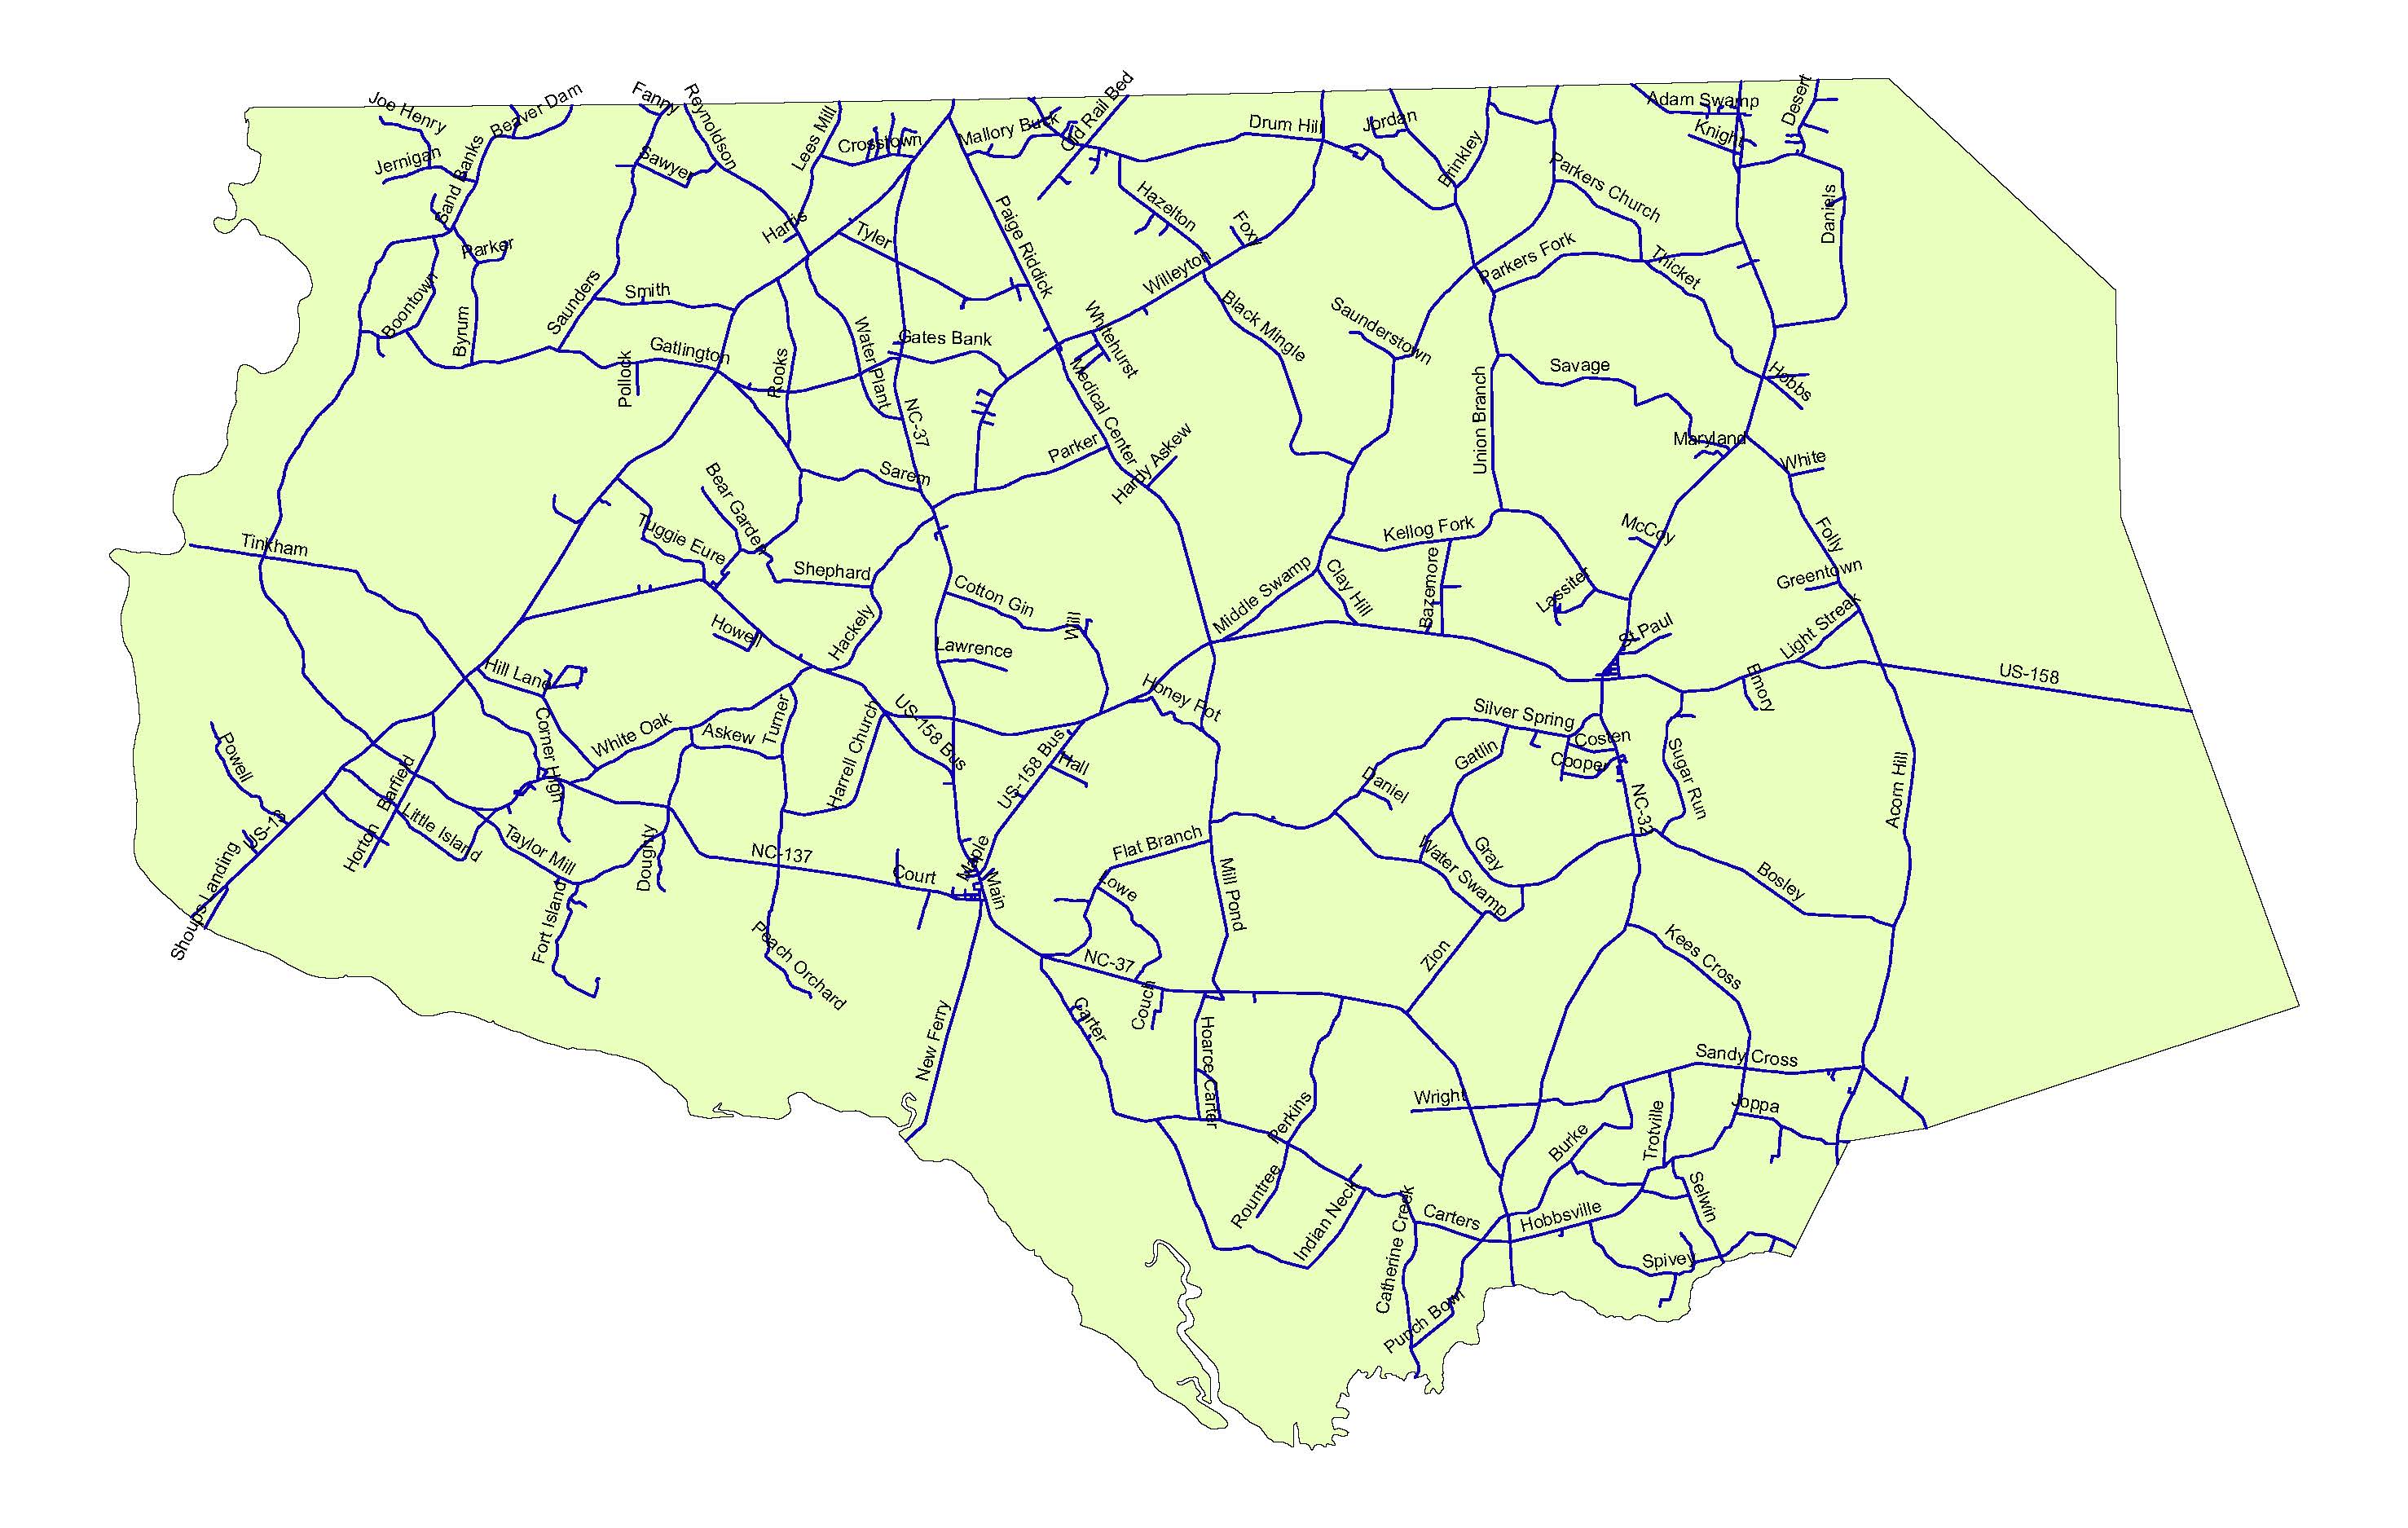 Gates County Map - Gates County on windsor north carolina map, danville north carolina map, emerald mines north carolina map, benton north carolina map, waynesville north carolina map, jonas ridge north carolina map, clay county north carolina map, lakeview north carolina map, holly ridge north carolina map, sliding rock north carolina map, gibson north carolina map, pittsboro north carolina map, mayodan north carolina map, blue ridge mountains north carolina map, moravian falls north carolina map, great smoky mountains north carolina map, richland north carolina map, warne north carolina map, rosman north carolina map, danbury north carolina map,